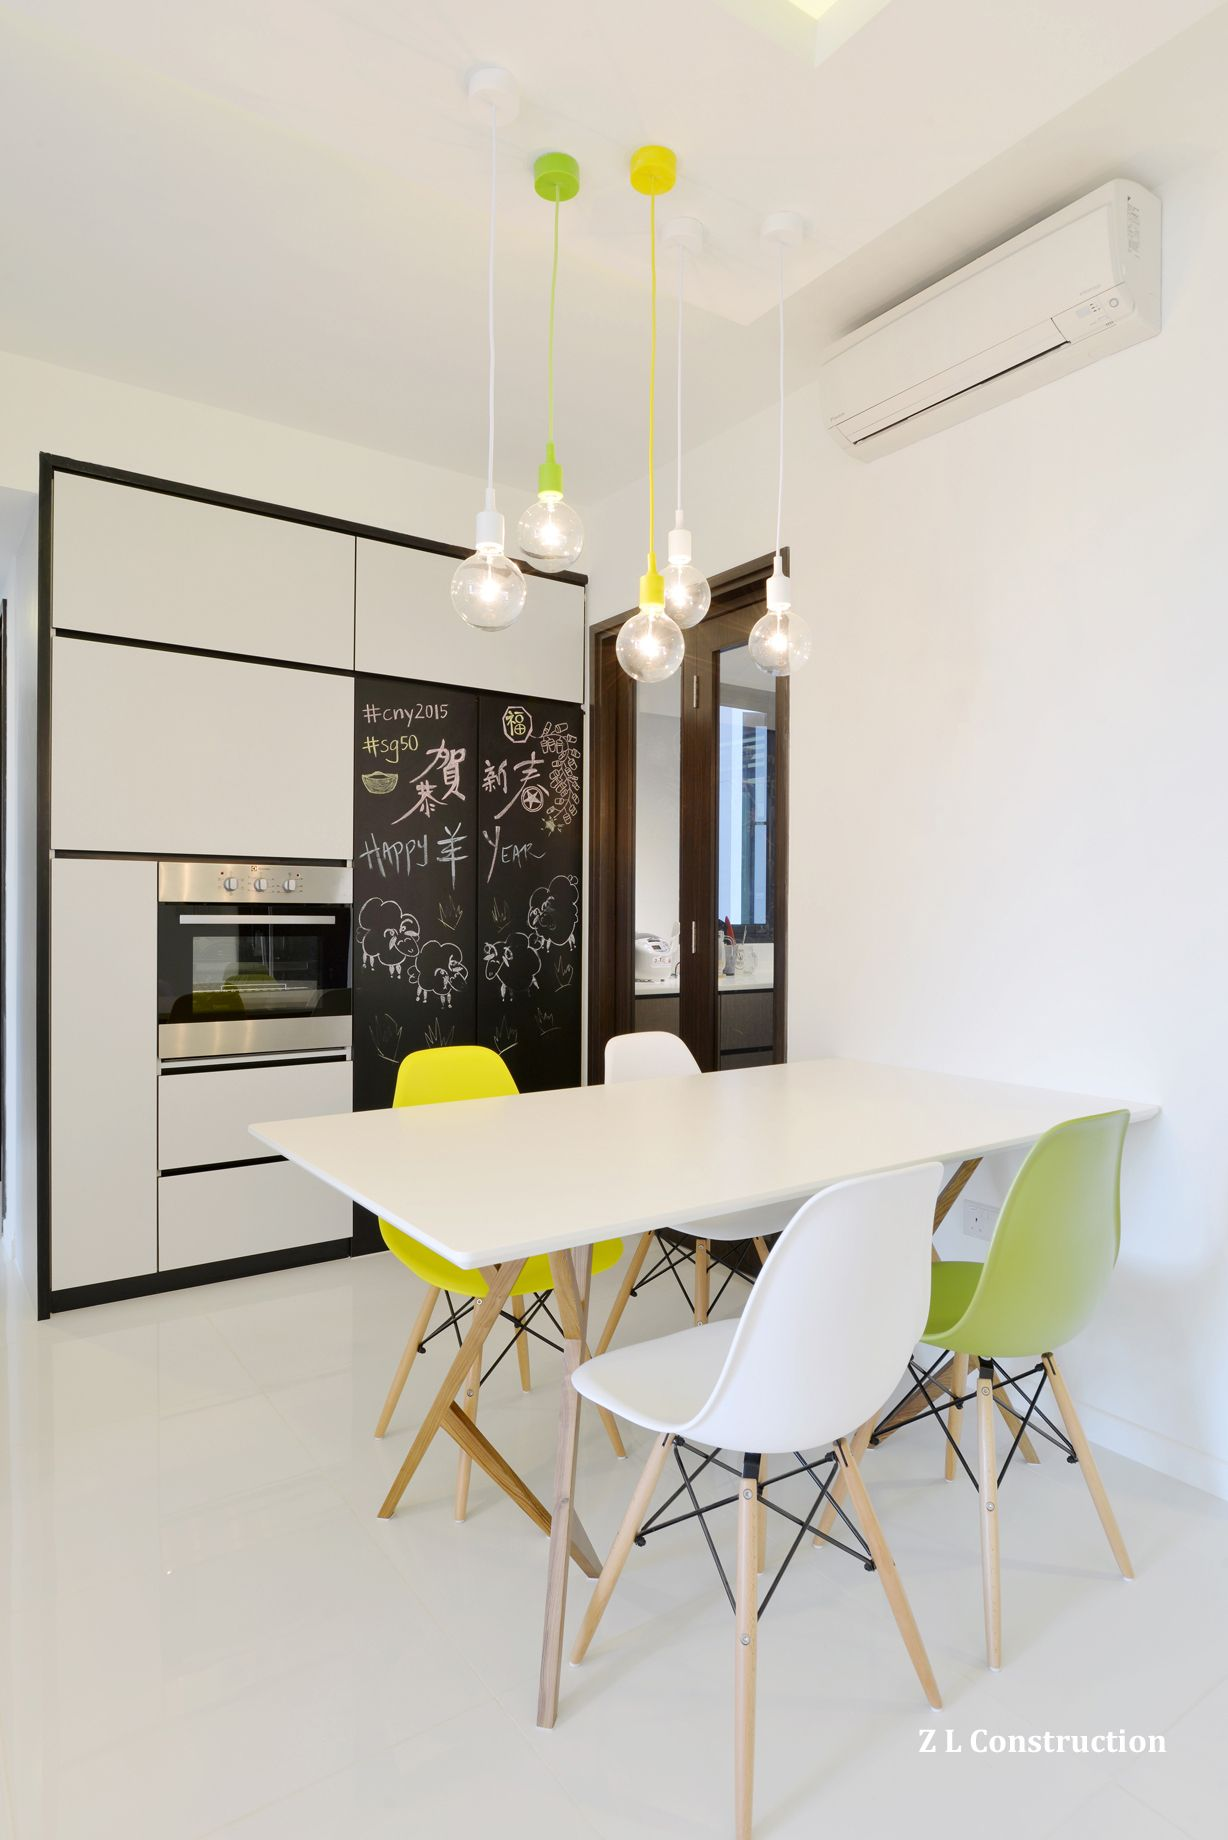 Z L Construction (Singapore) \\ Dry Kitchen Cabinets With White Door Panels  Against Black